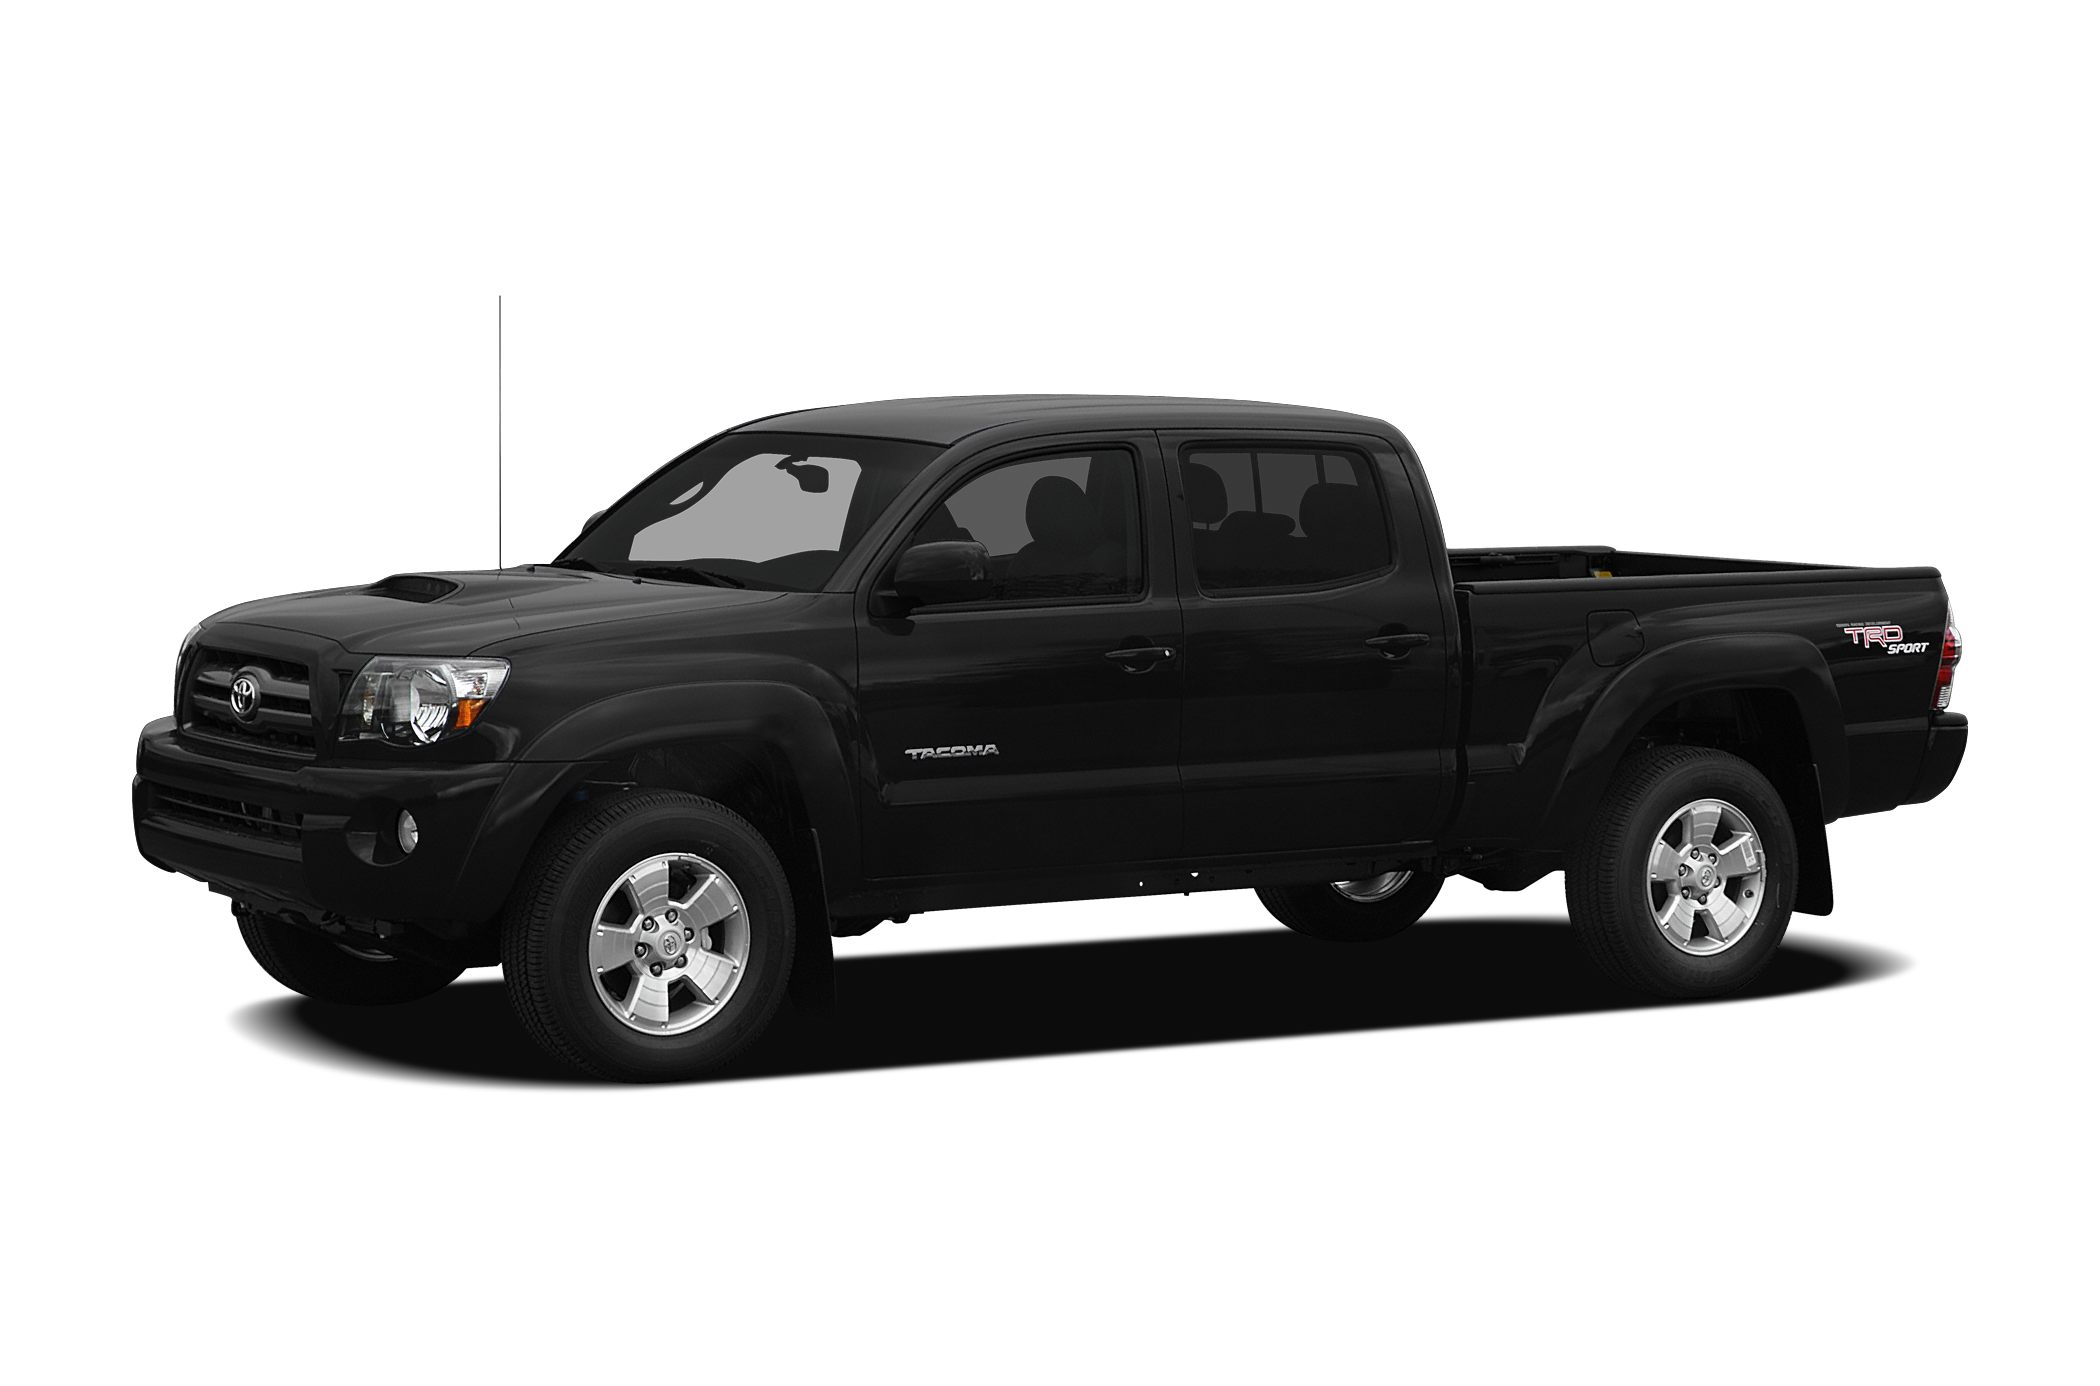 2009 Toyota Tacoma Base This particular 4-Wheel-Drive Tacoma Crew Cab has been Certified and is eq